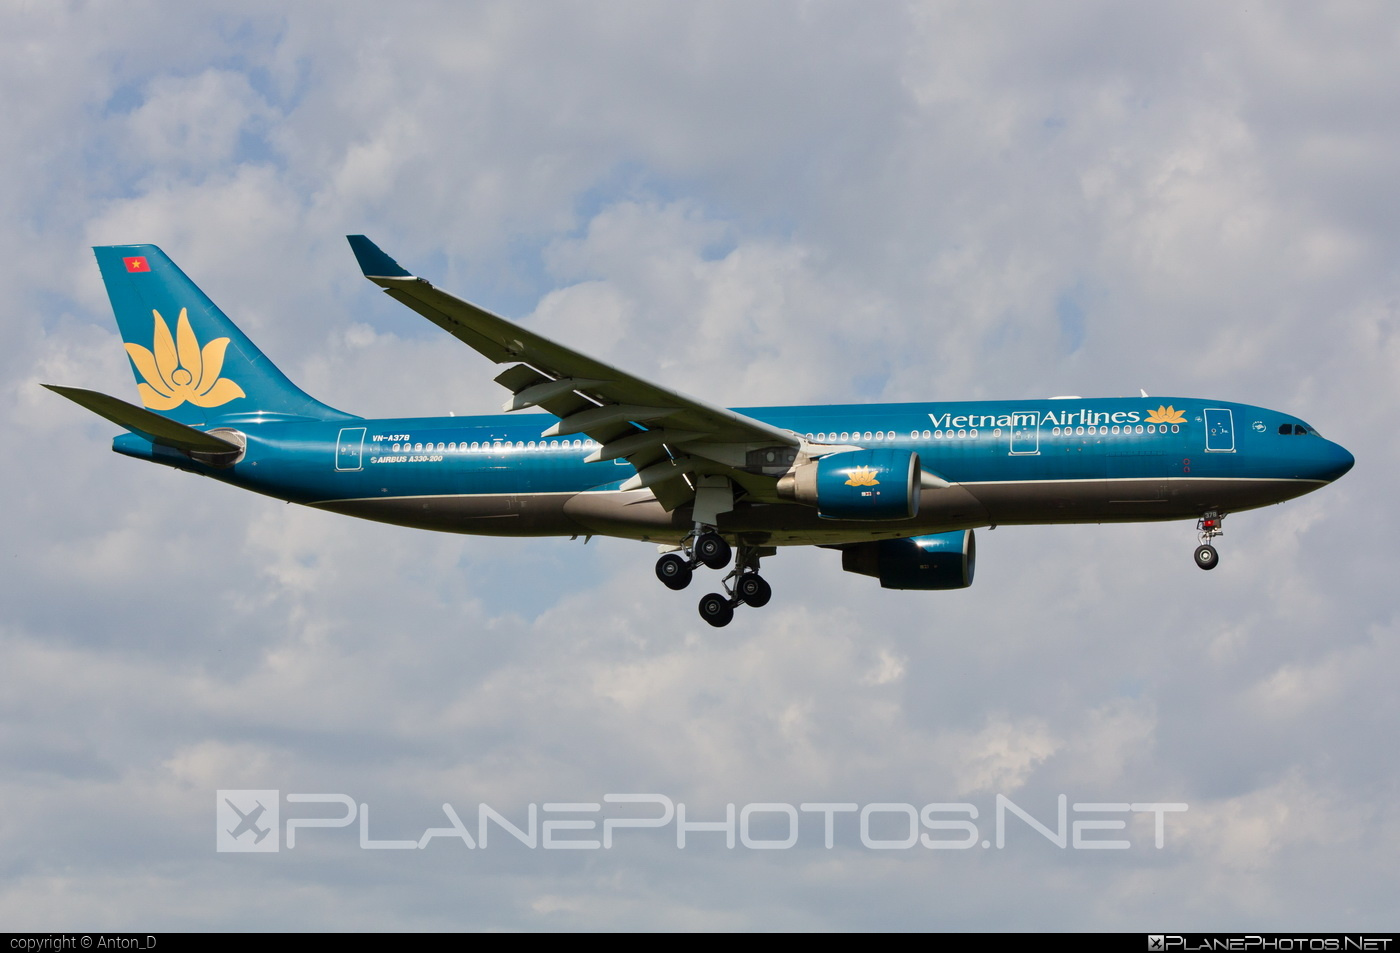 Airbus A330-223 - VN-A378 operated by Vietnam Airlines #a330 #a330family #airbus #airbus330